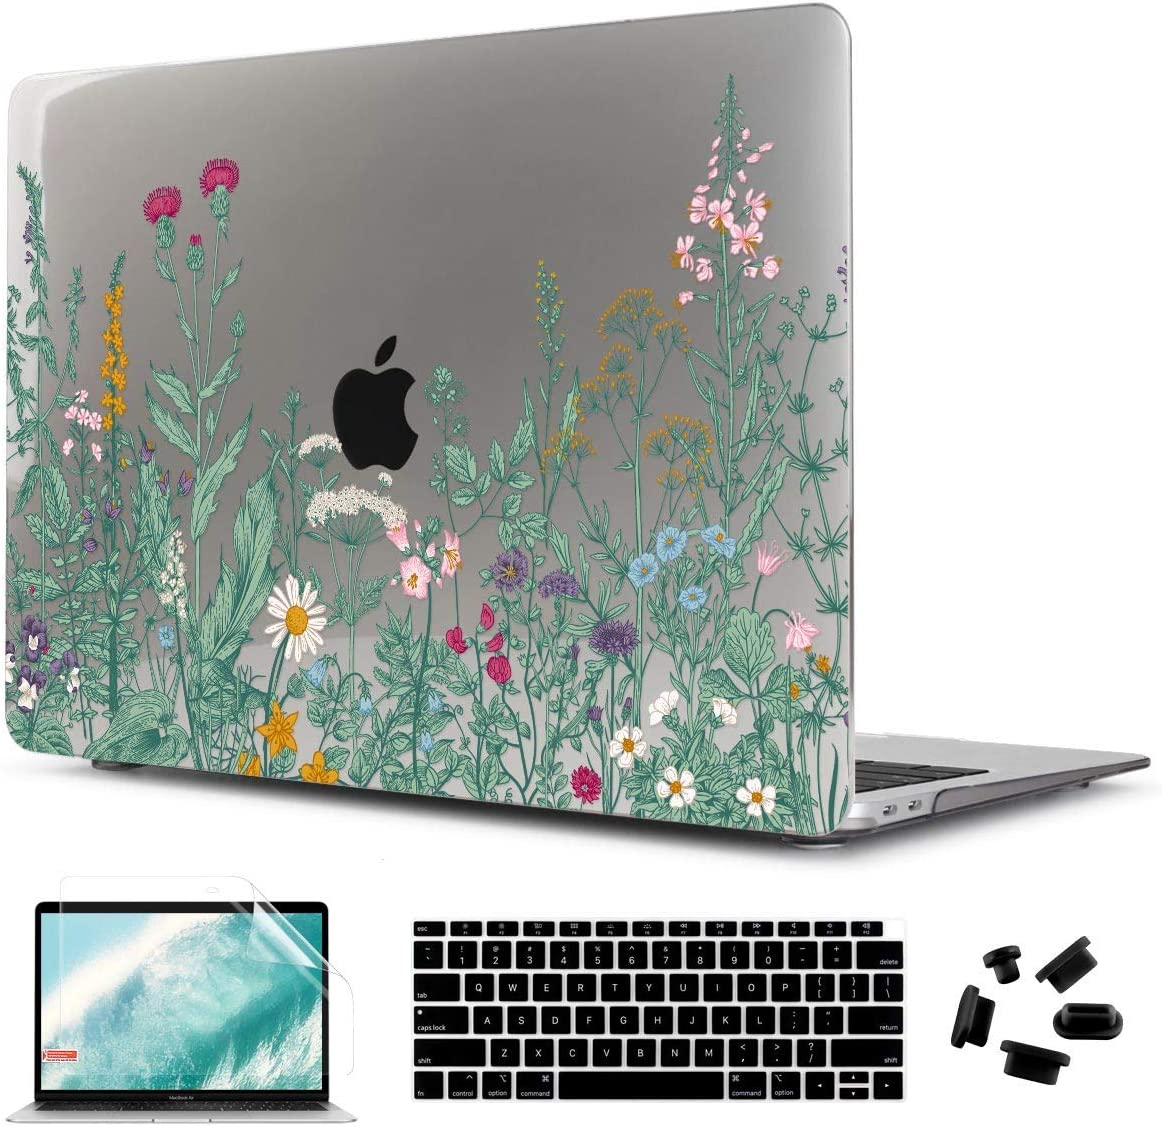 CiSoo Laptop Hard Shell Case Crystal Gray Cover with Keyboard Cover and Screen Protector for MacBook Air 13 Inch Case 2020 2019 2018 Release Model A2179 A1932 with Touch ID, Beauty Flowers